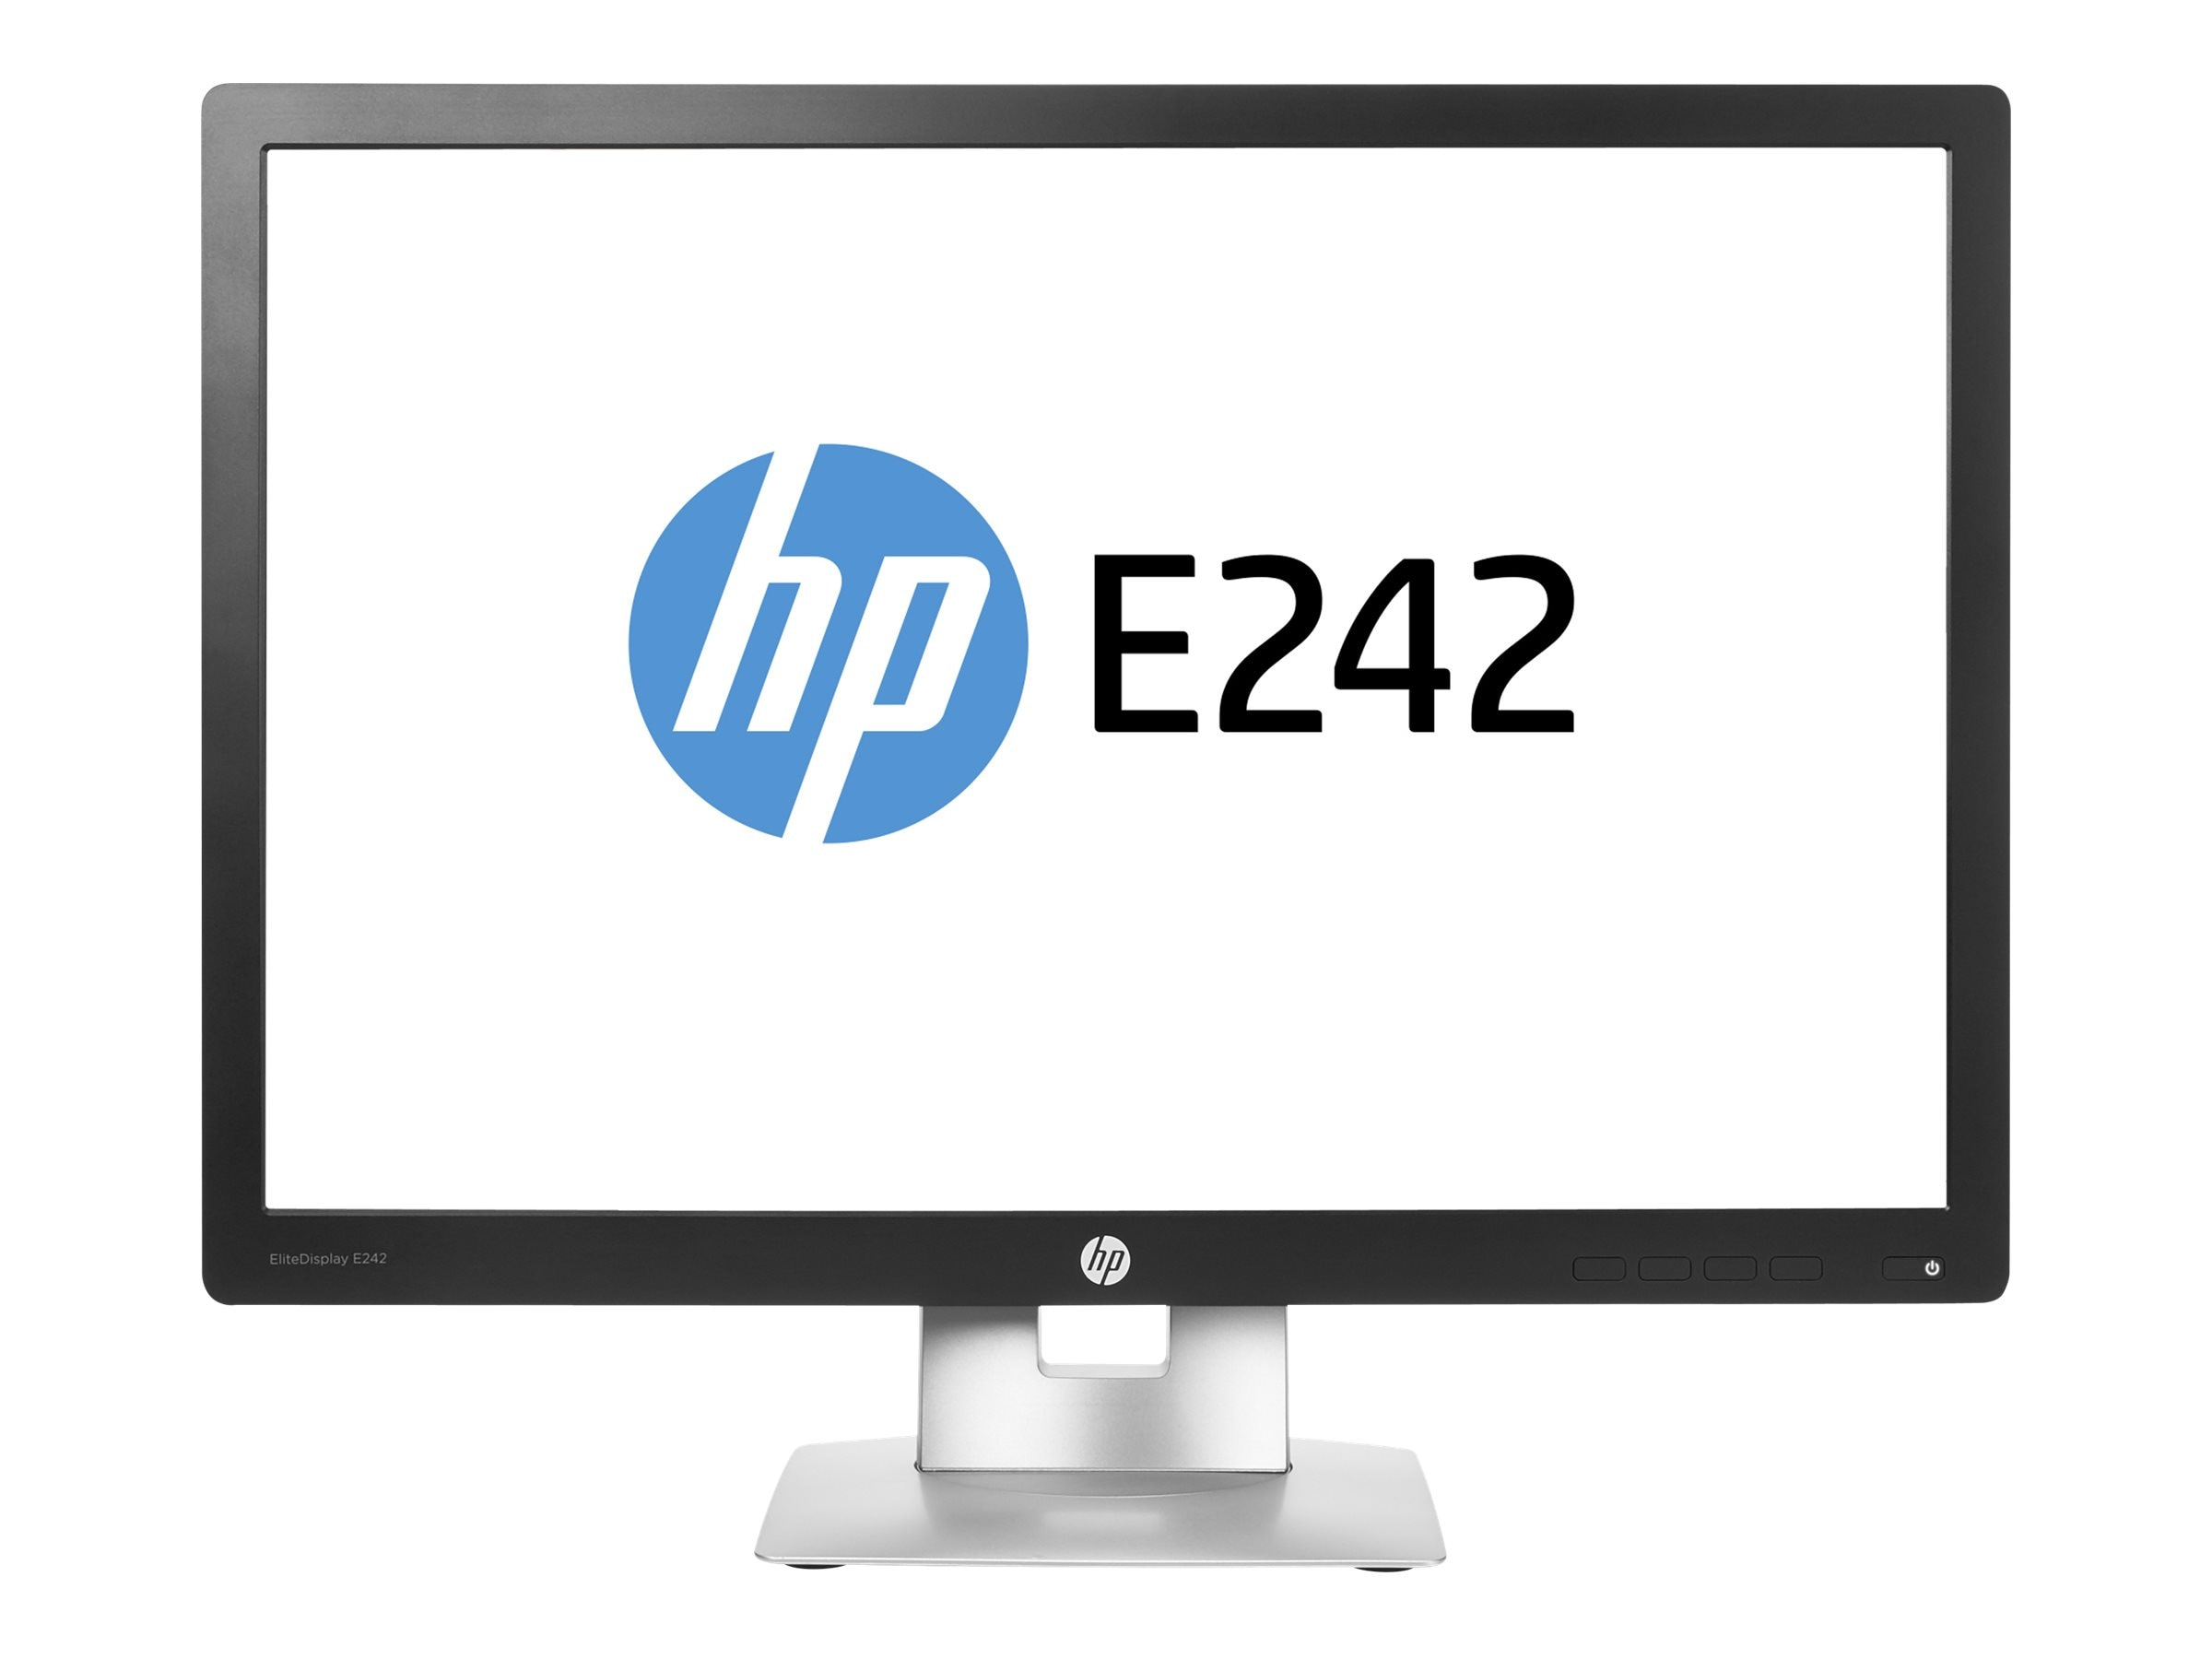 HP 24 E242 Full HD LED-LCD Monitor, Black, M1P02A8#ABA, 30737281, Monitors - LED-LCD